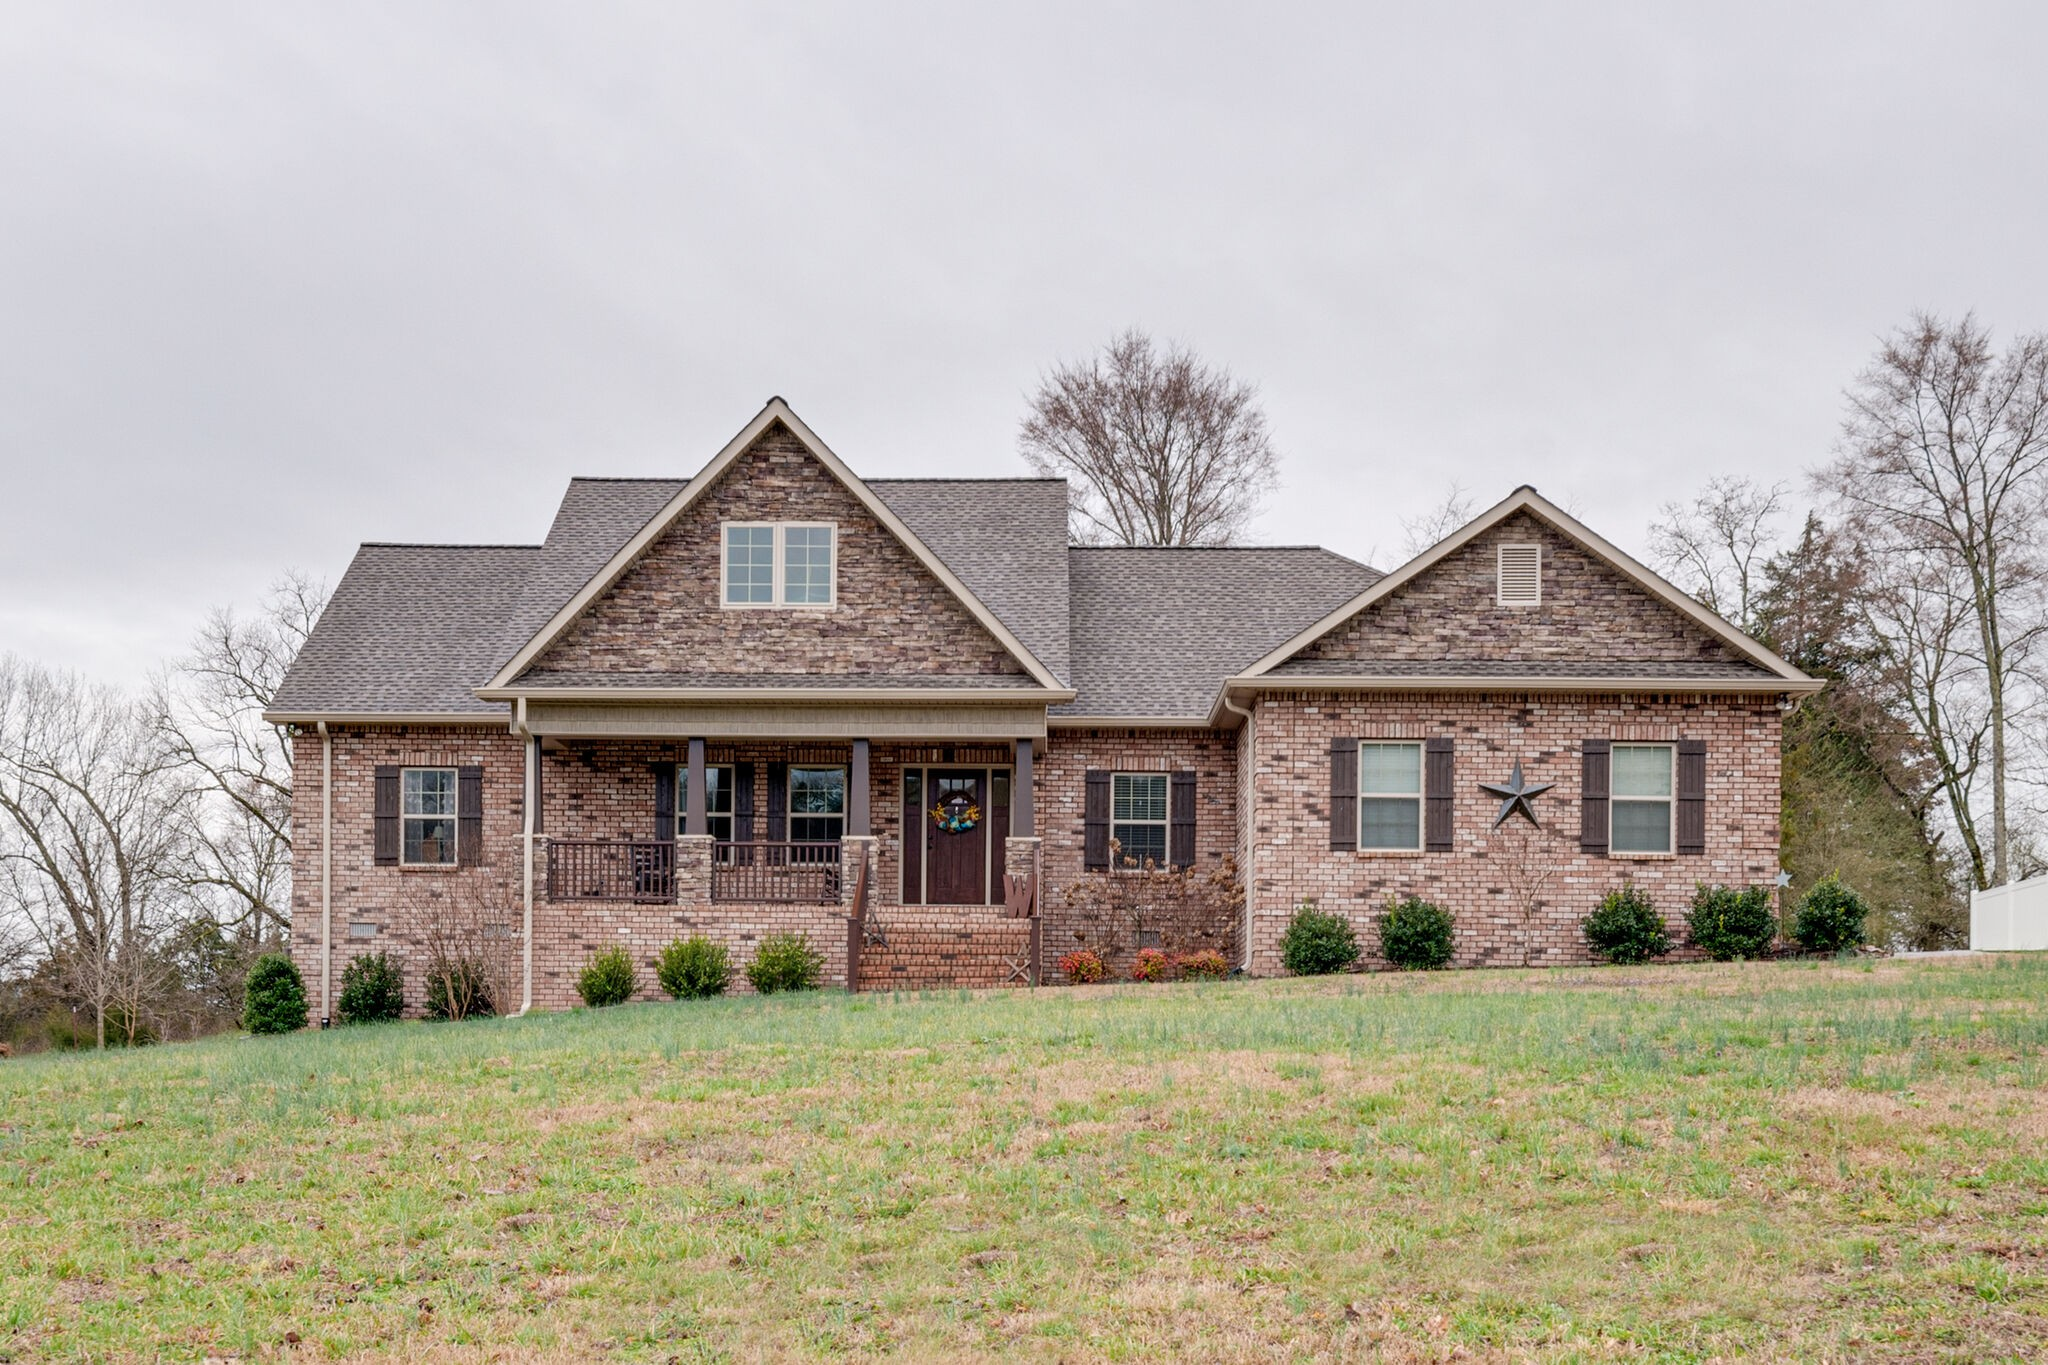 735 Thoroughbred Ln Property Photo - Hartsville, TN real estate listing